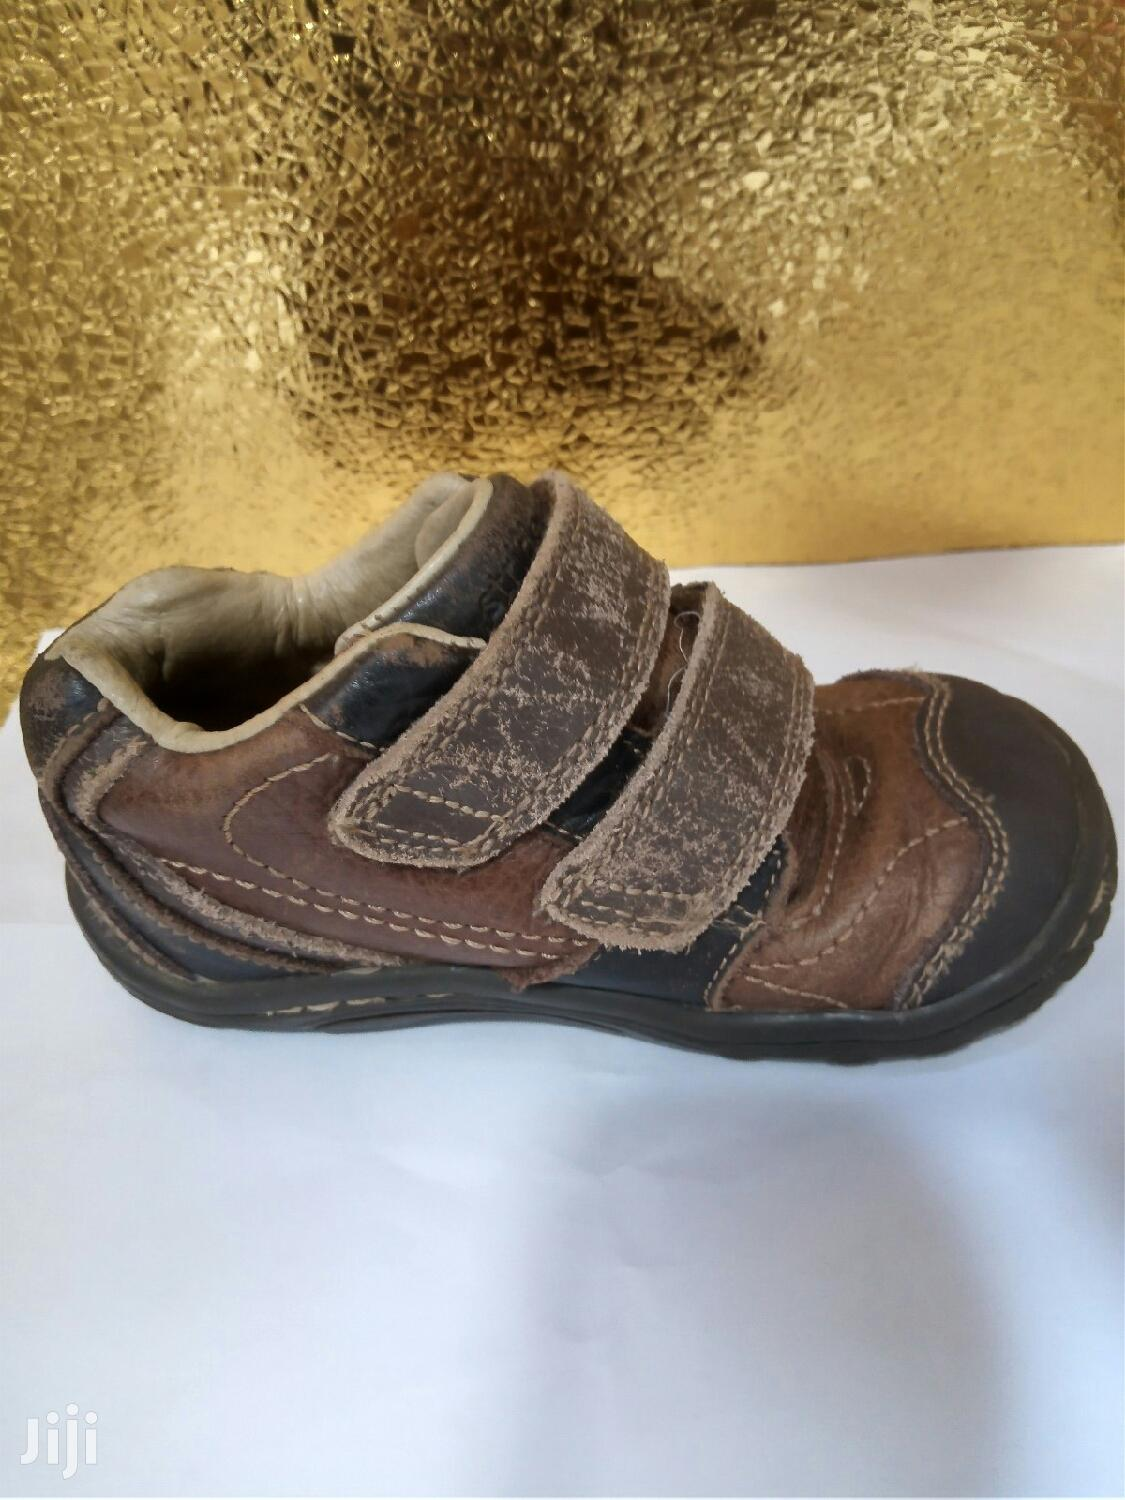 Kids Shoes Available In All Types And Sizes